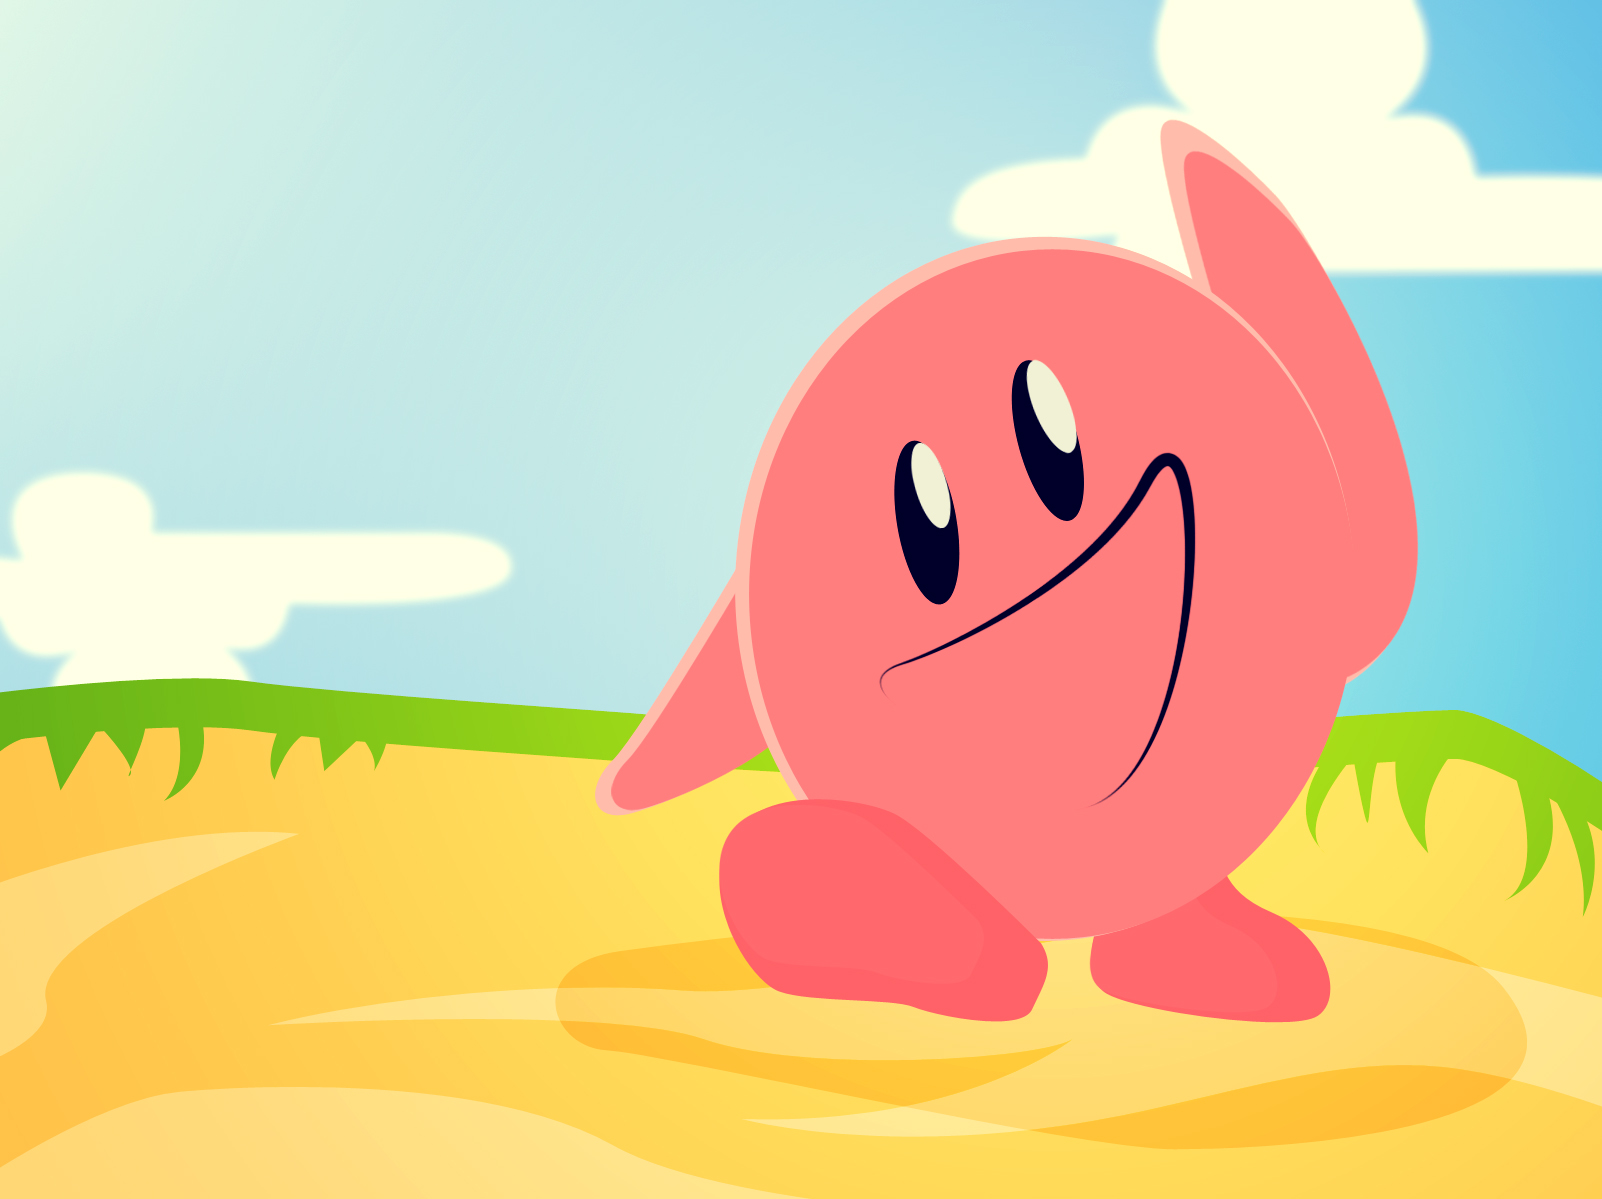 Kirby! Summer's not yet over!